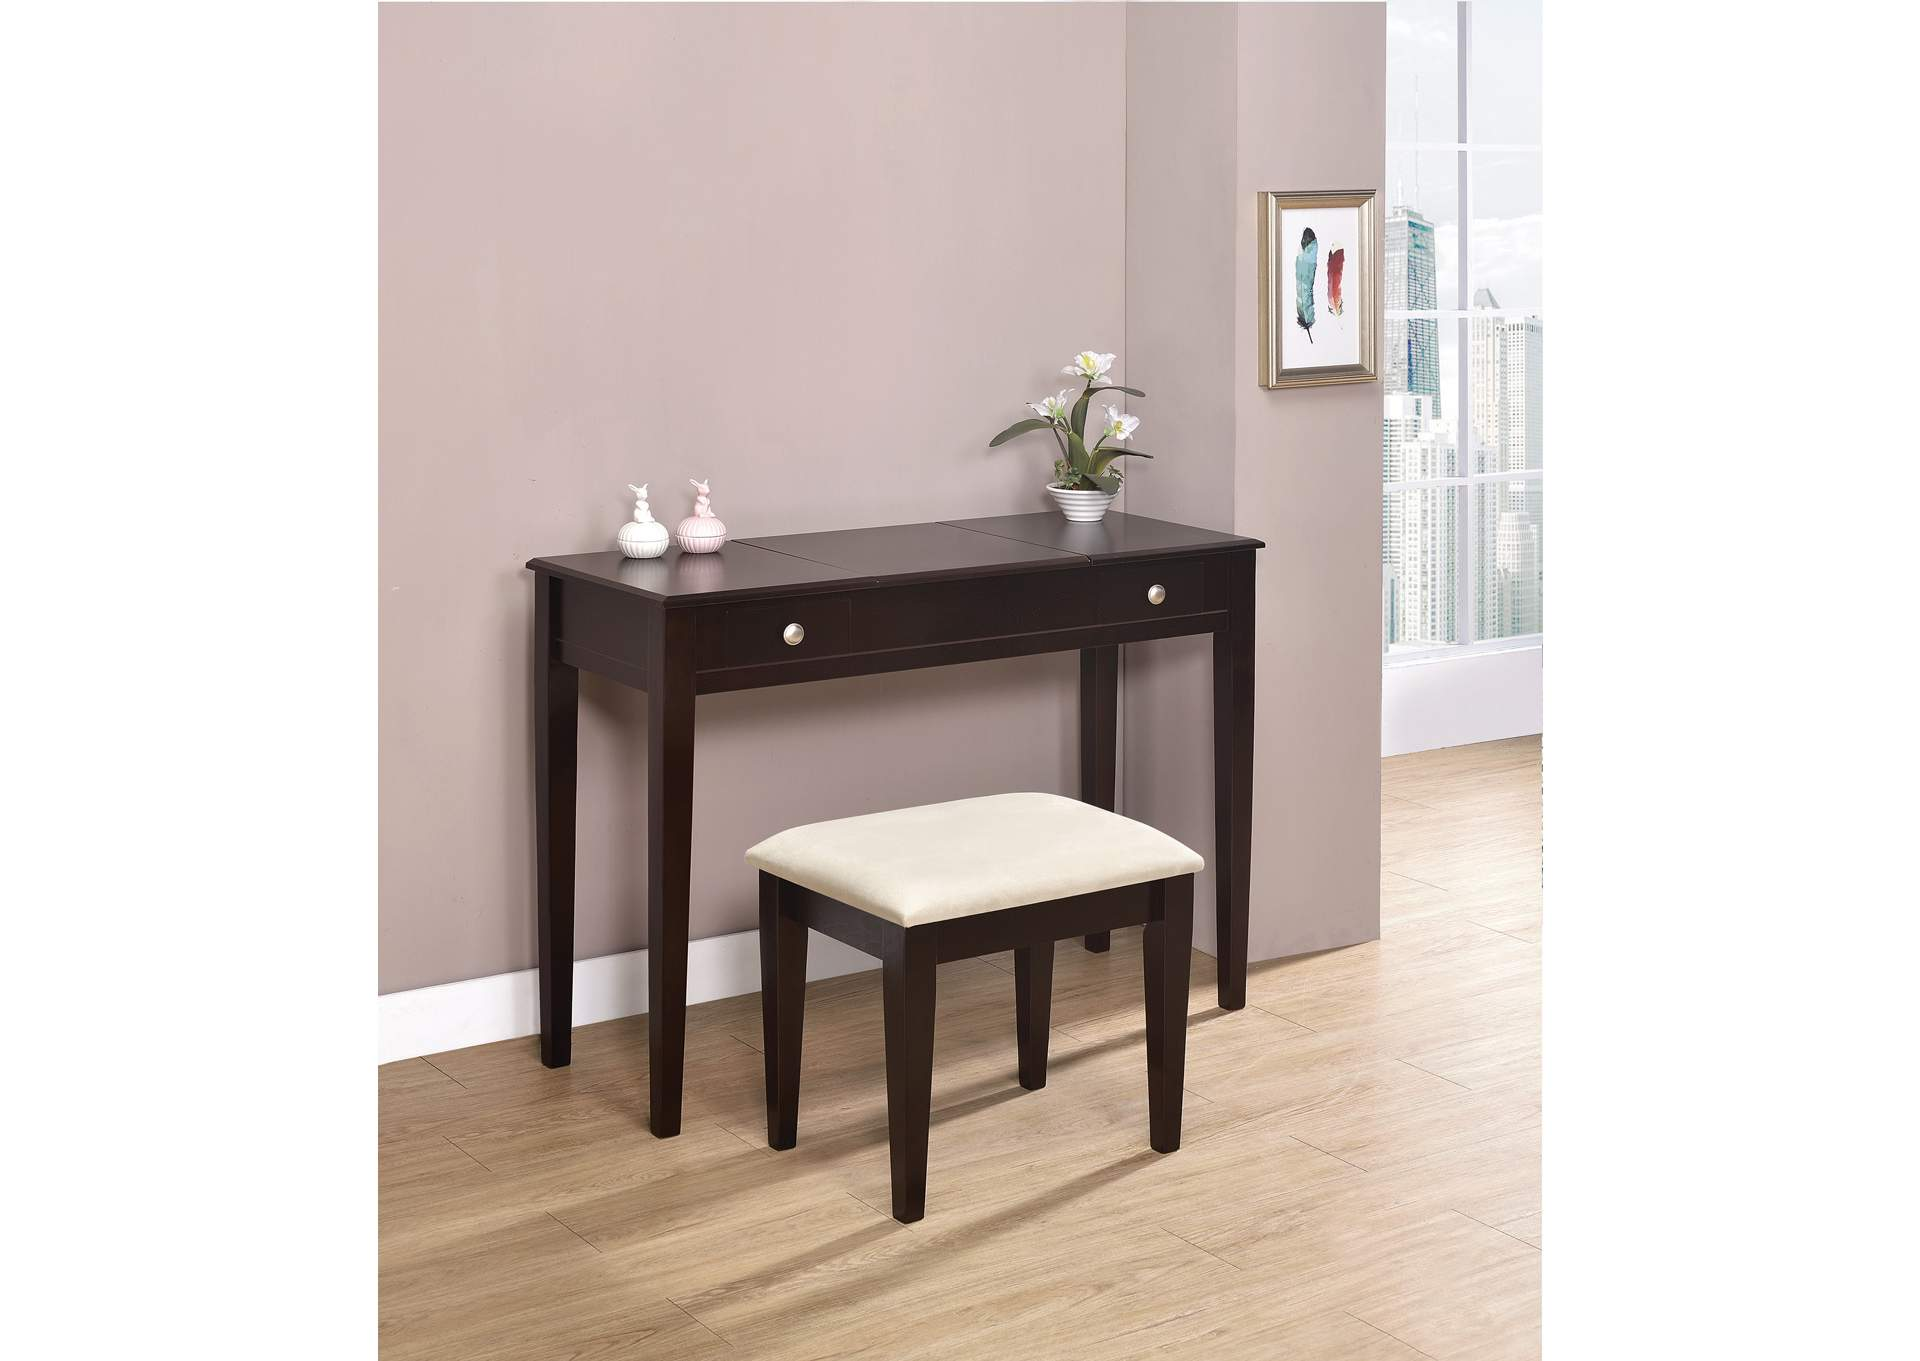 Espresso Vanity and Bench,Coaster Furniture